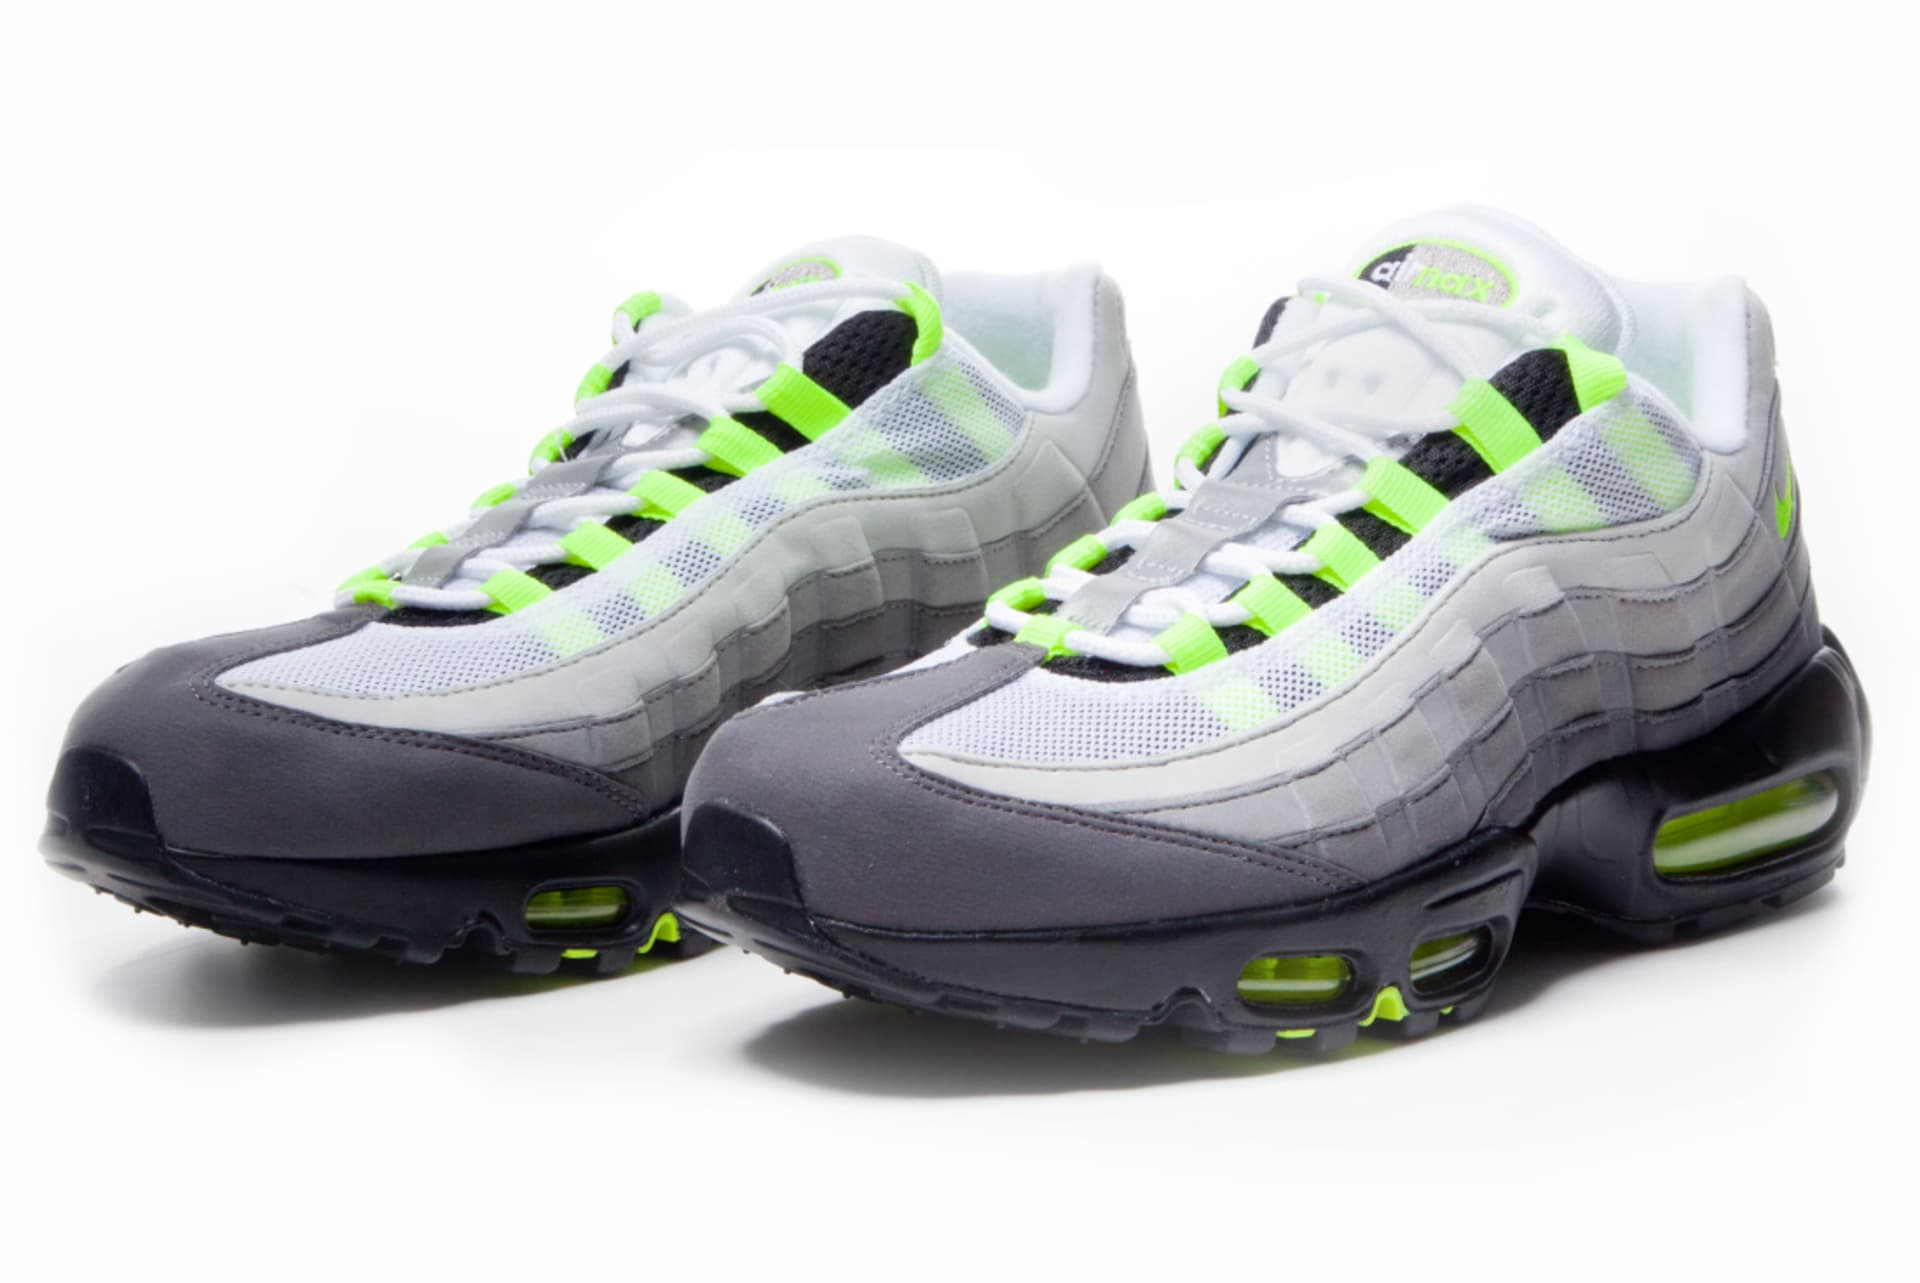 e26c1d16b2a296 Best Sneakers of 2015